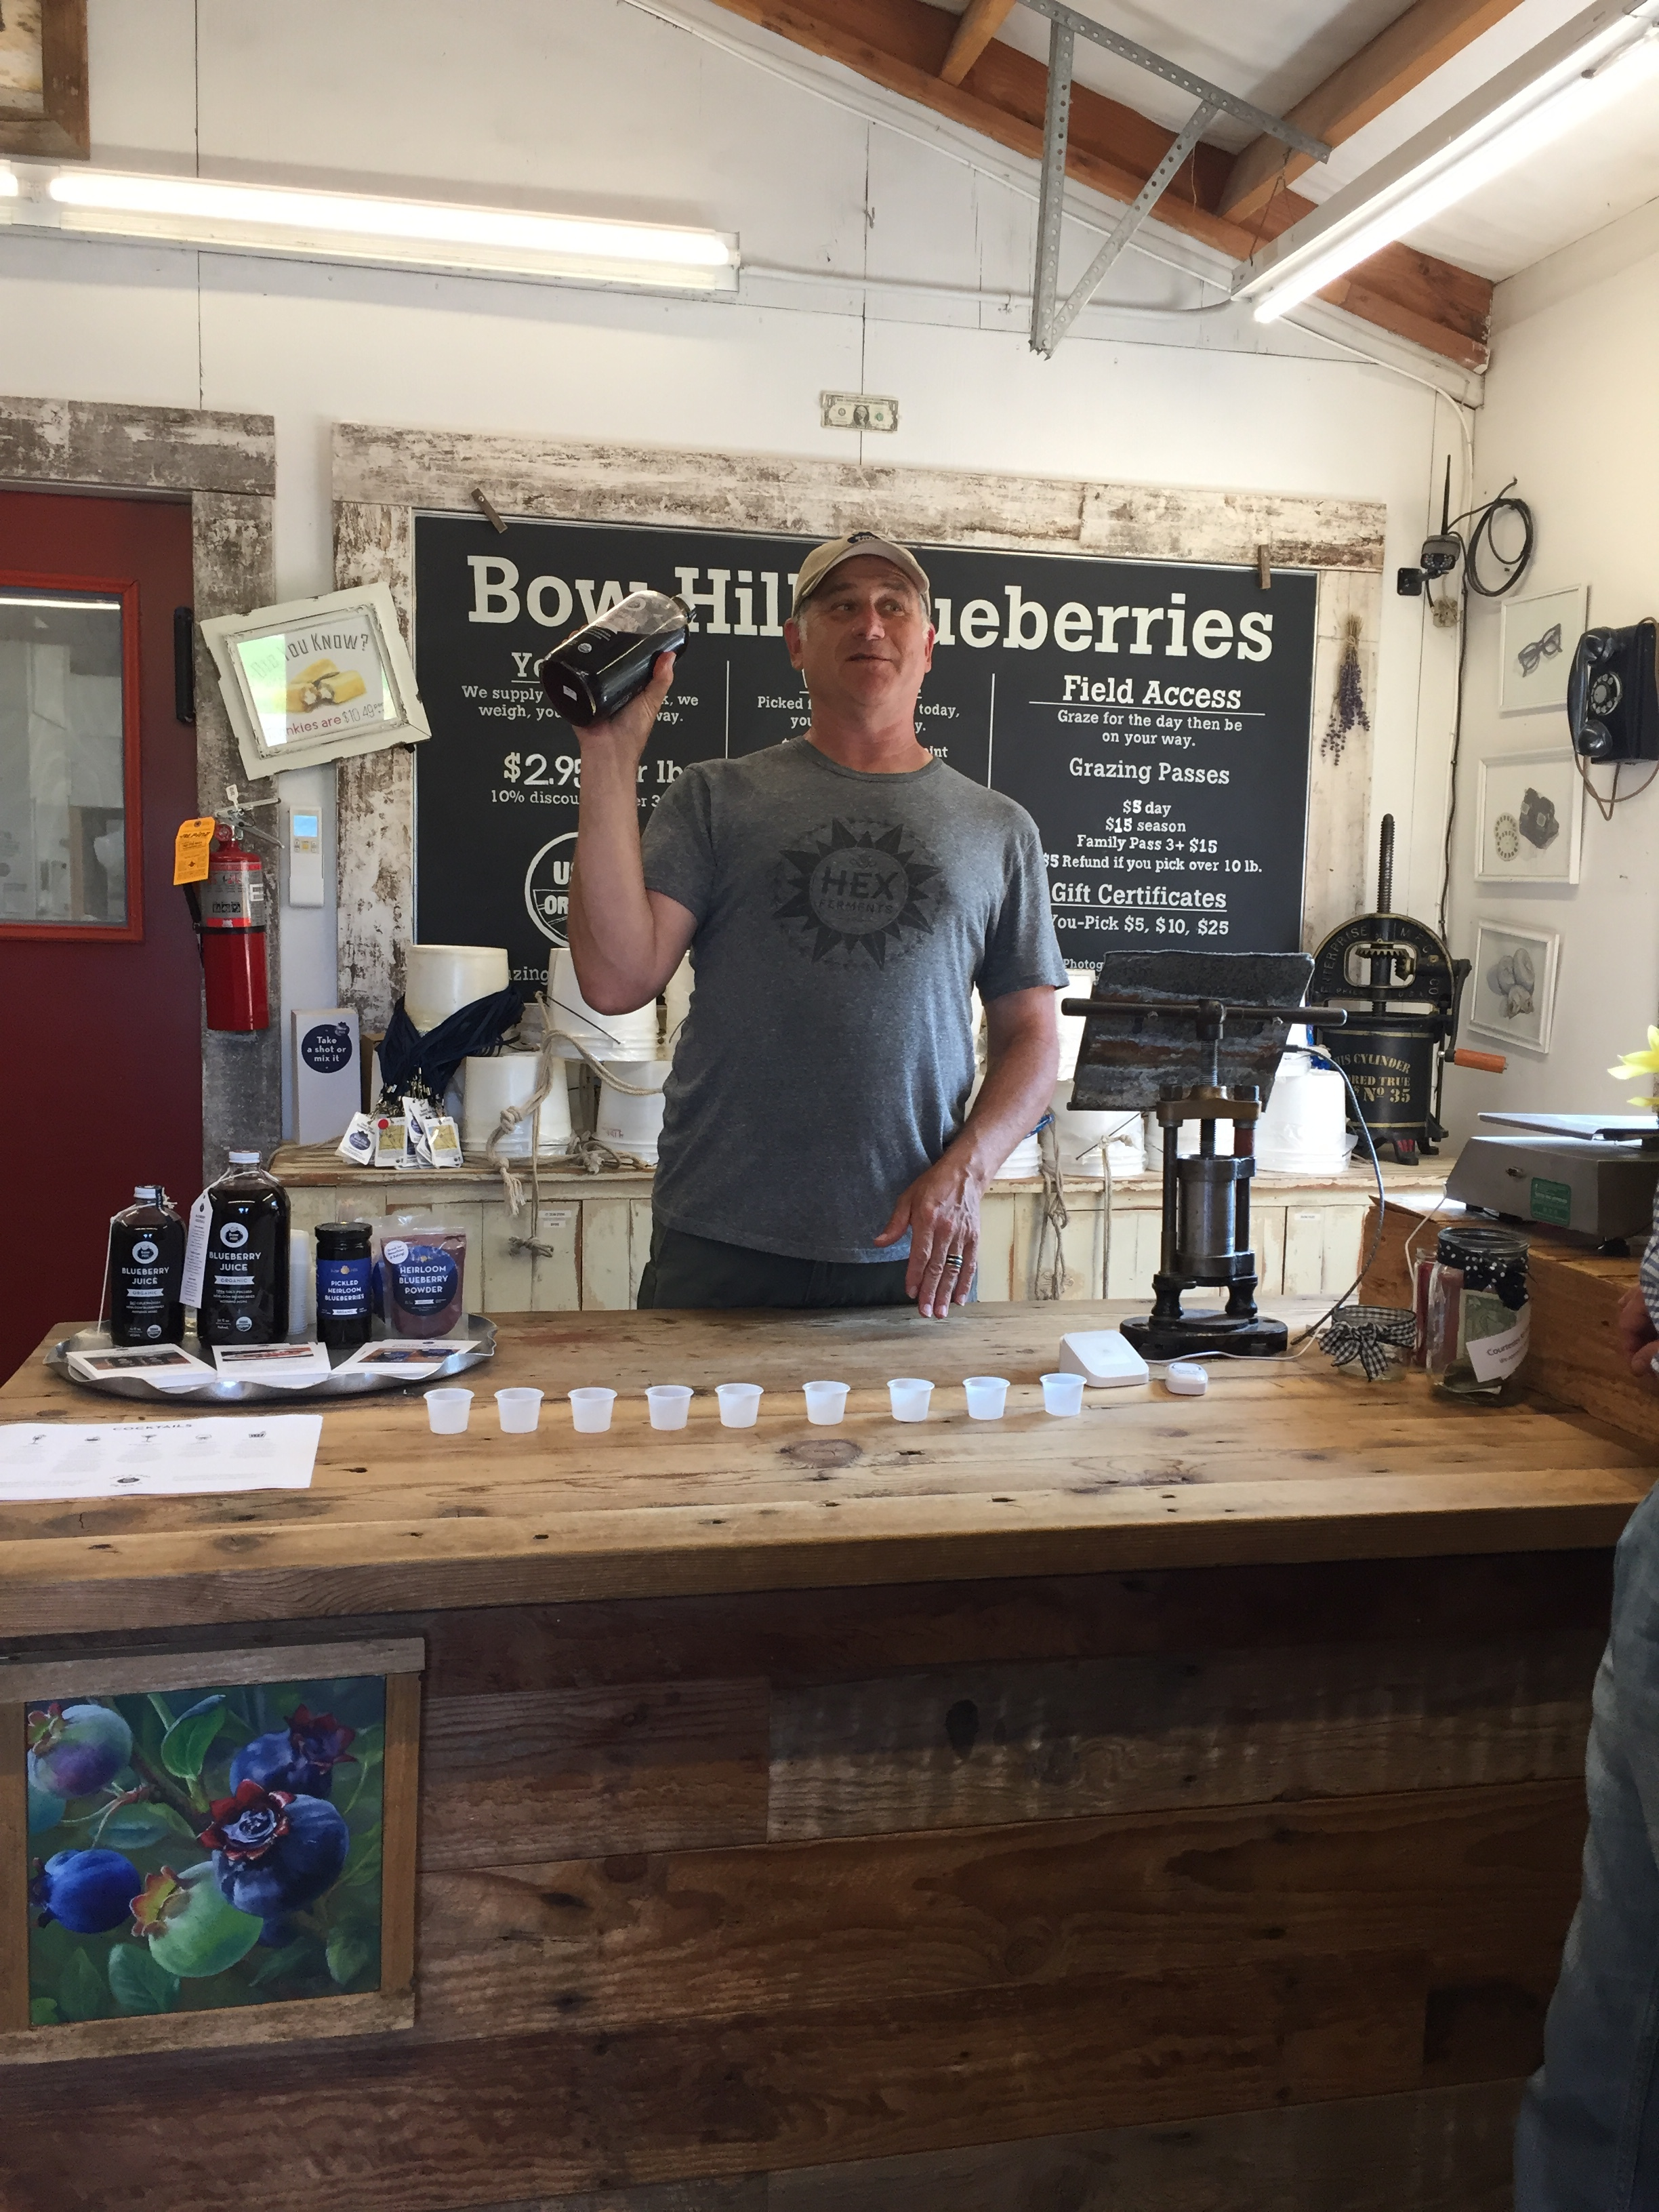 Bow Hill Blueberries, our last stop, is renowned for its blueberry ice cream.